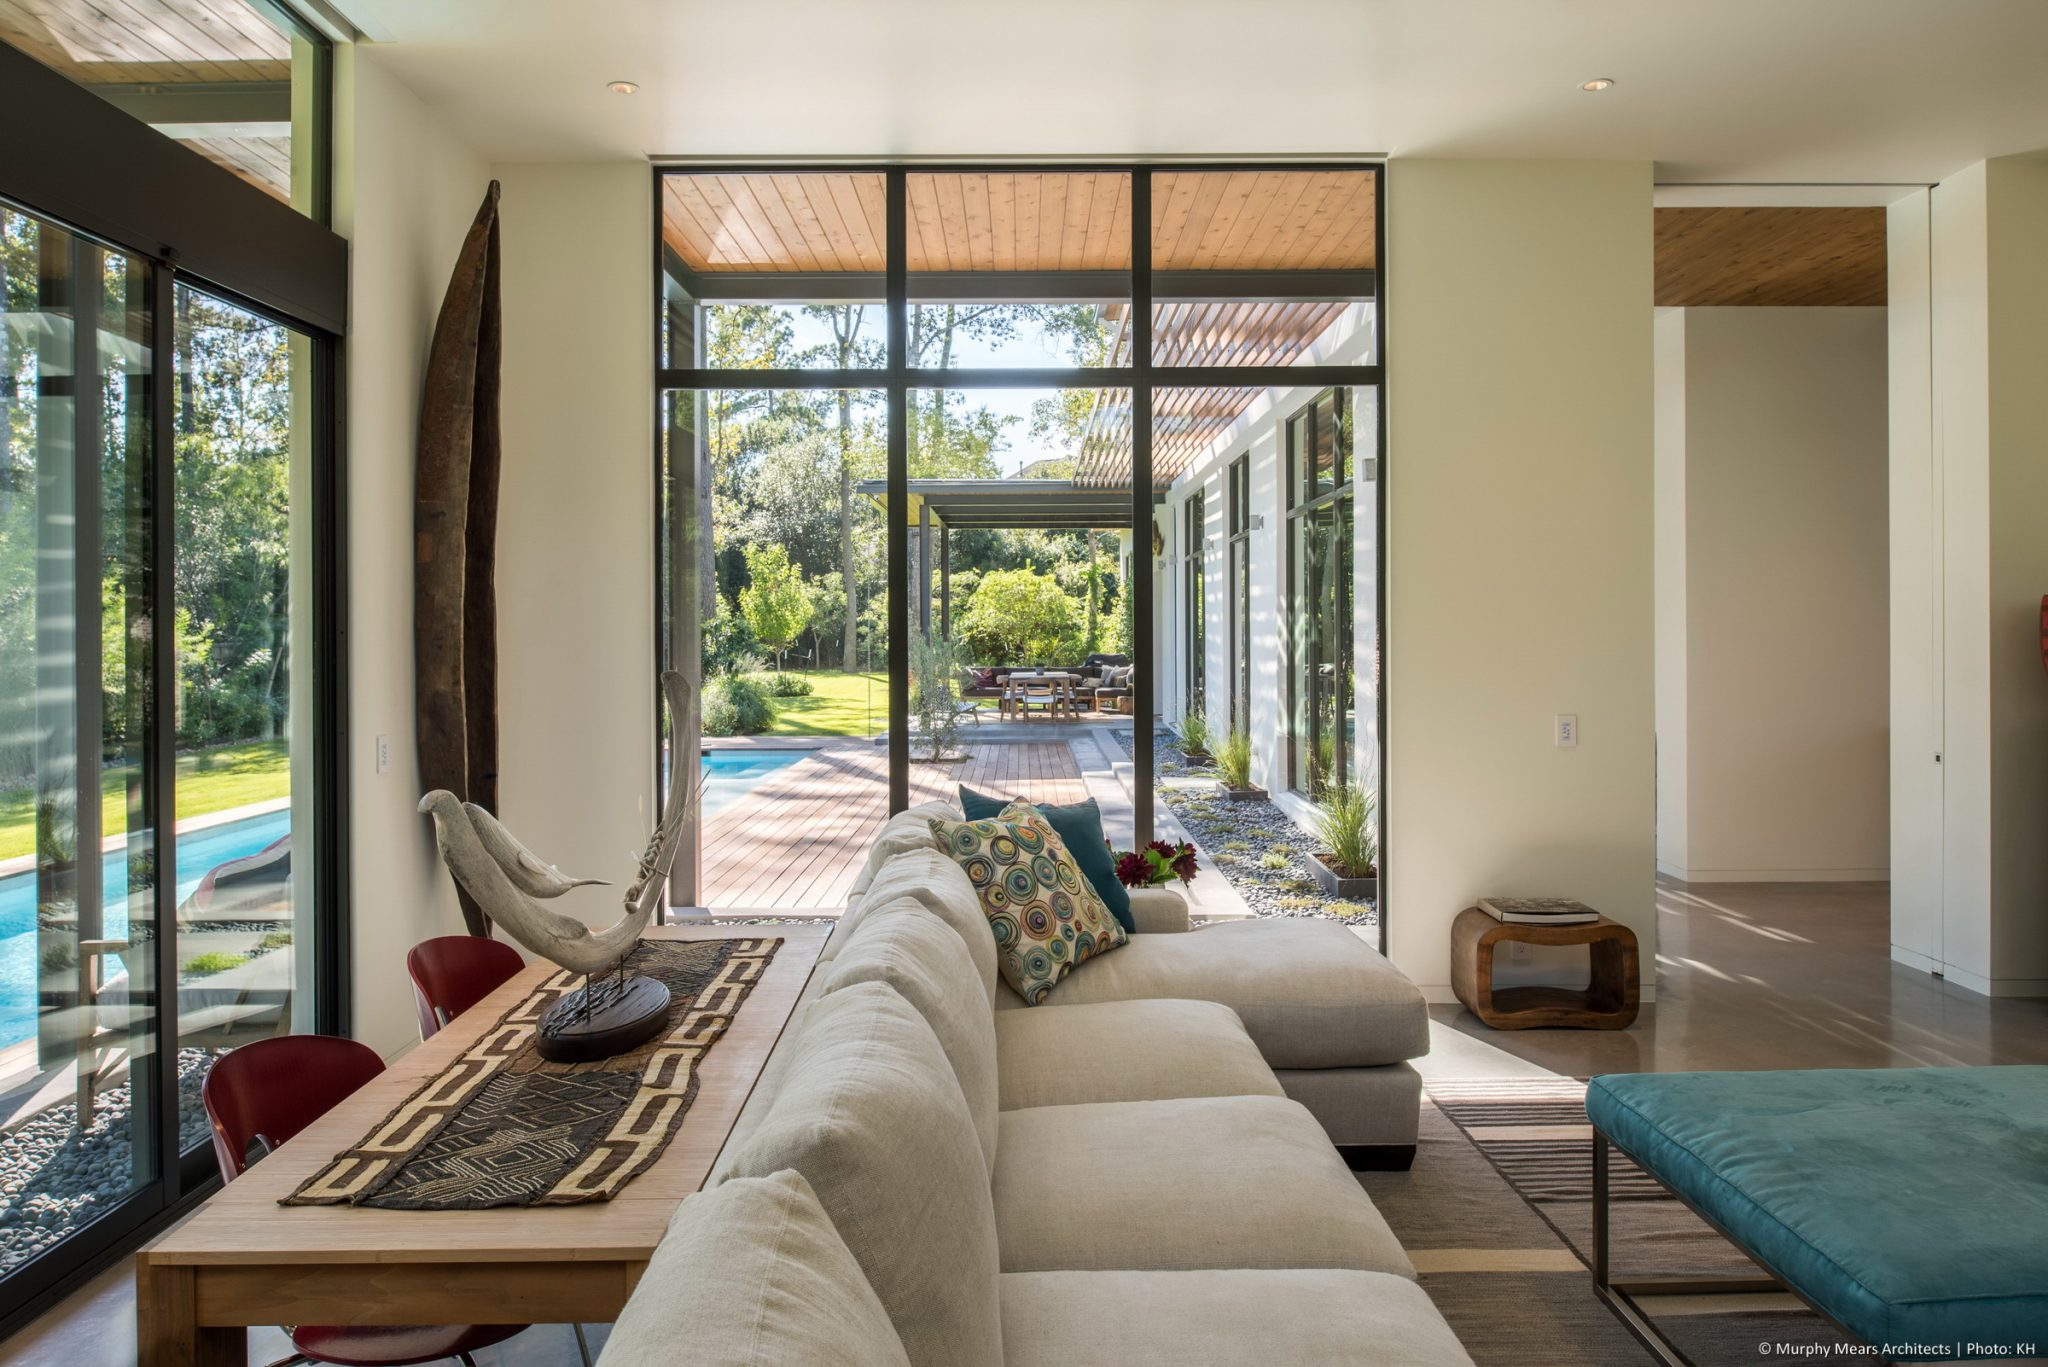 Carlton Woods Residence - The family room projects into the backyard, allowing a long distance view across the site, through the covered terrace beyond.